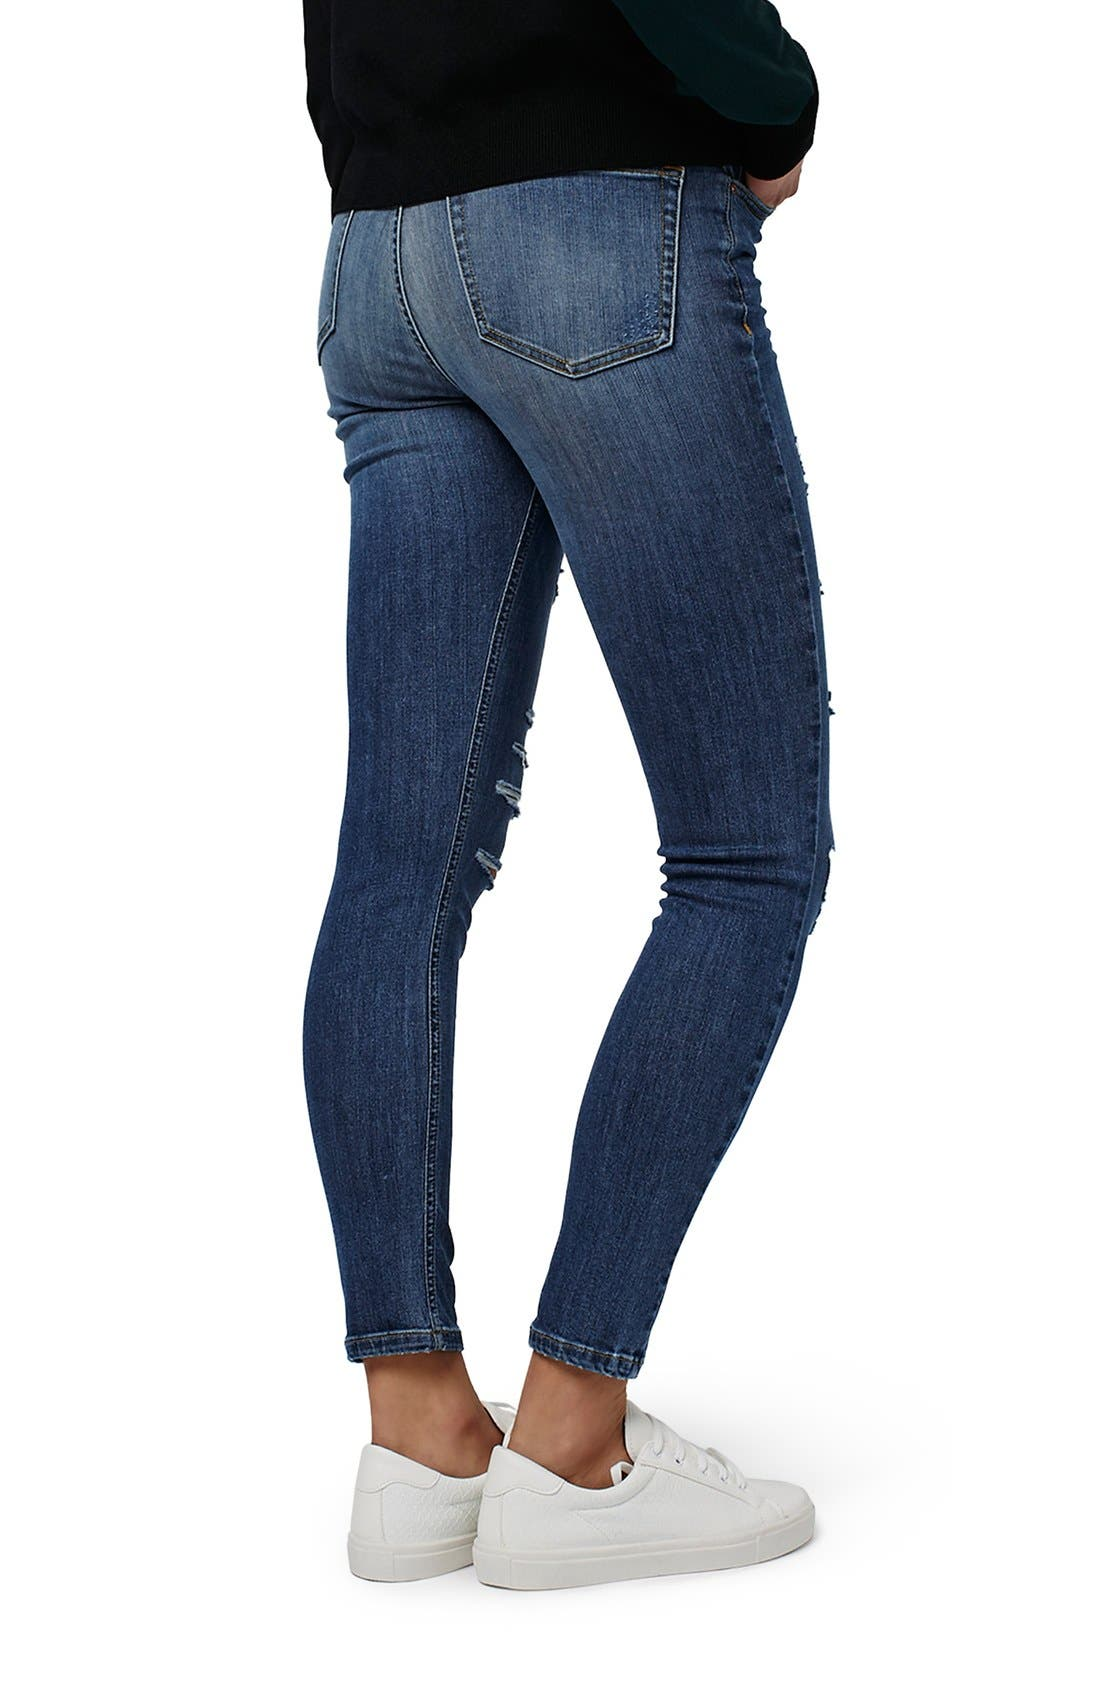 TOPSHOP, Jamie Ripped High Rise Skinny Jeans, Alternate thumbnail 4, color, 400